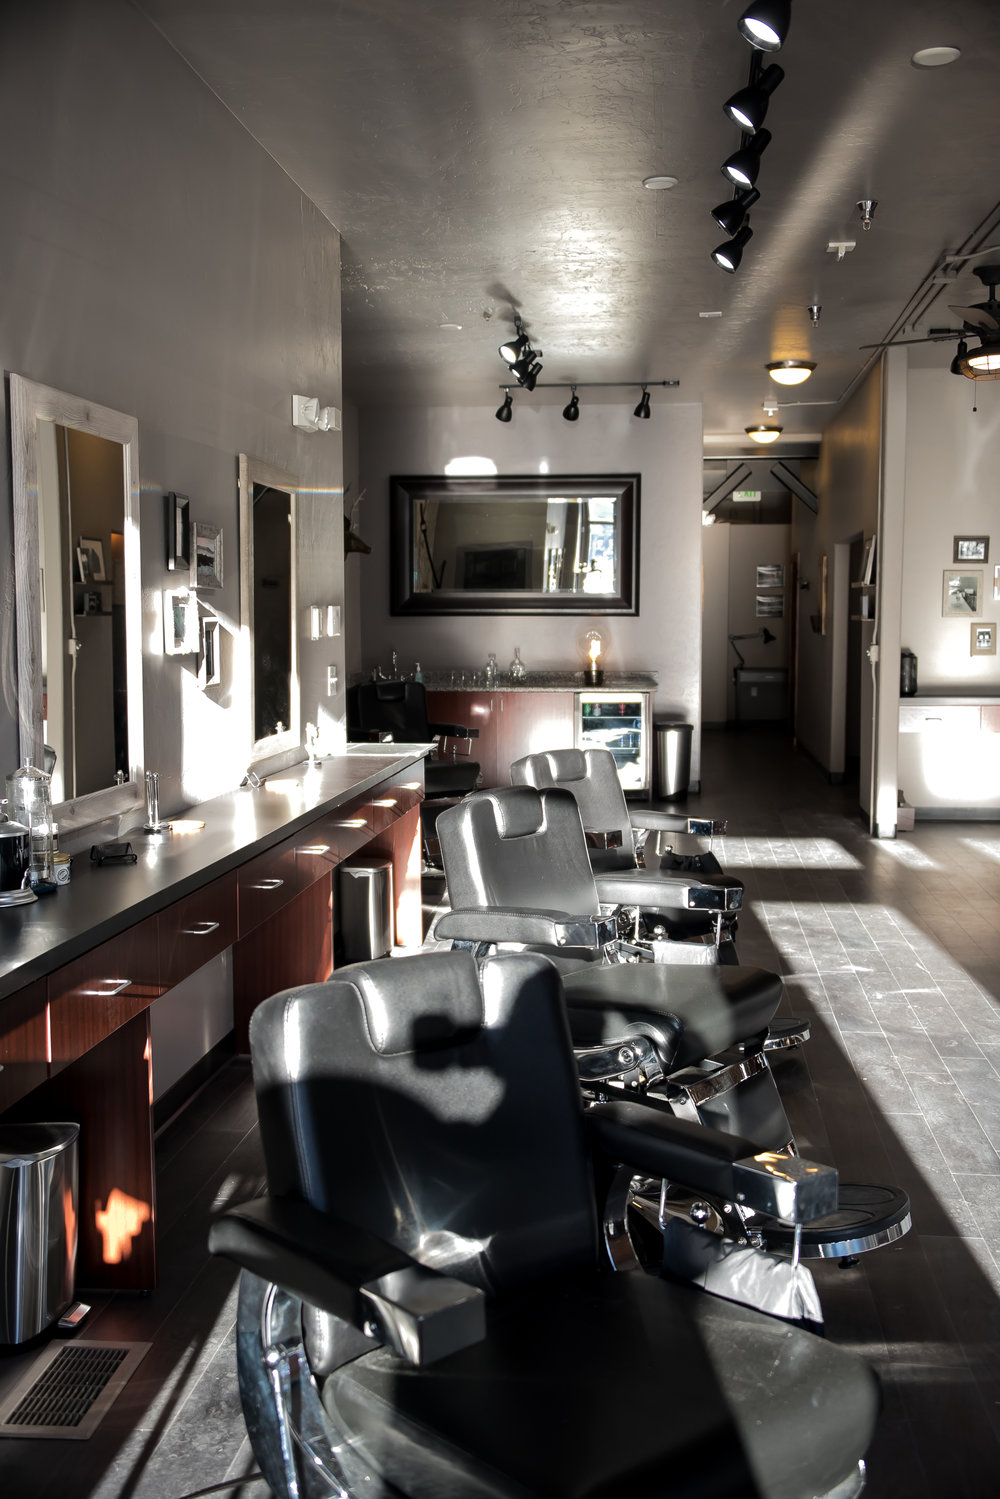 Franks Salon-43.jpg